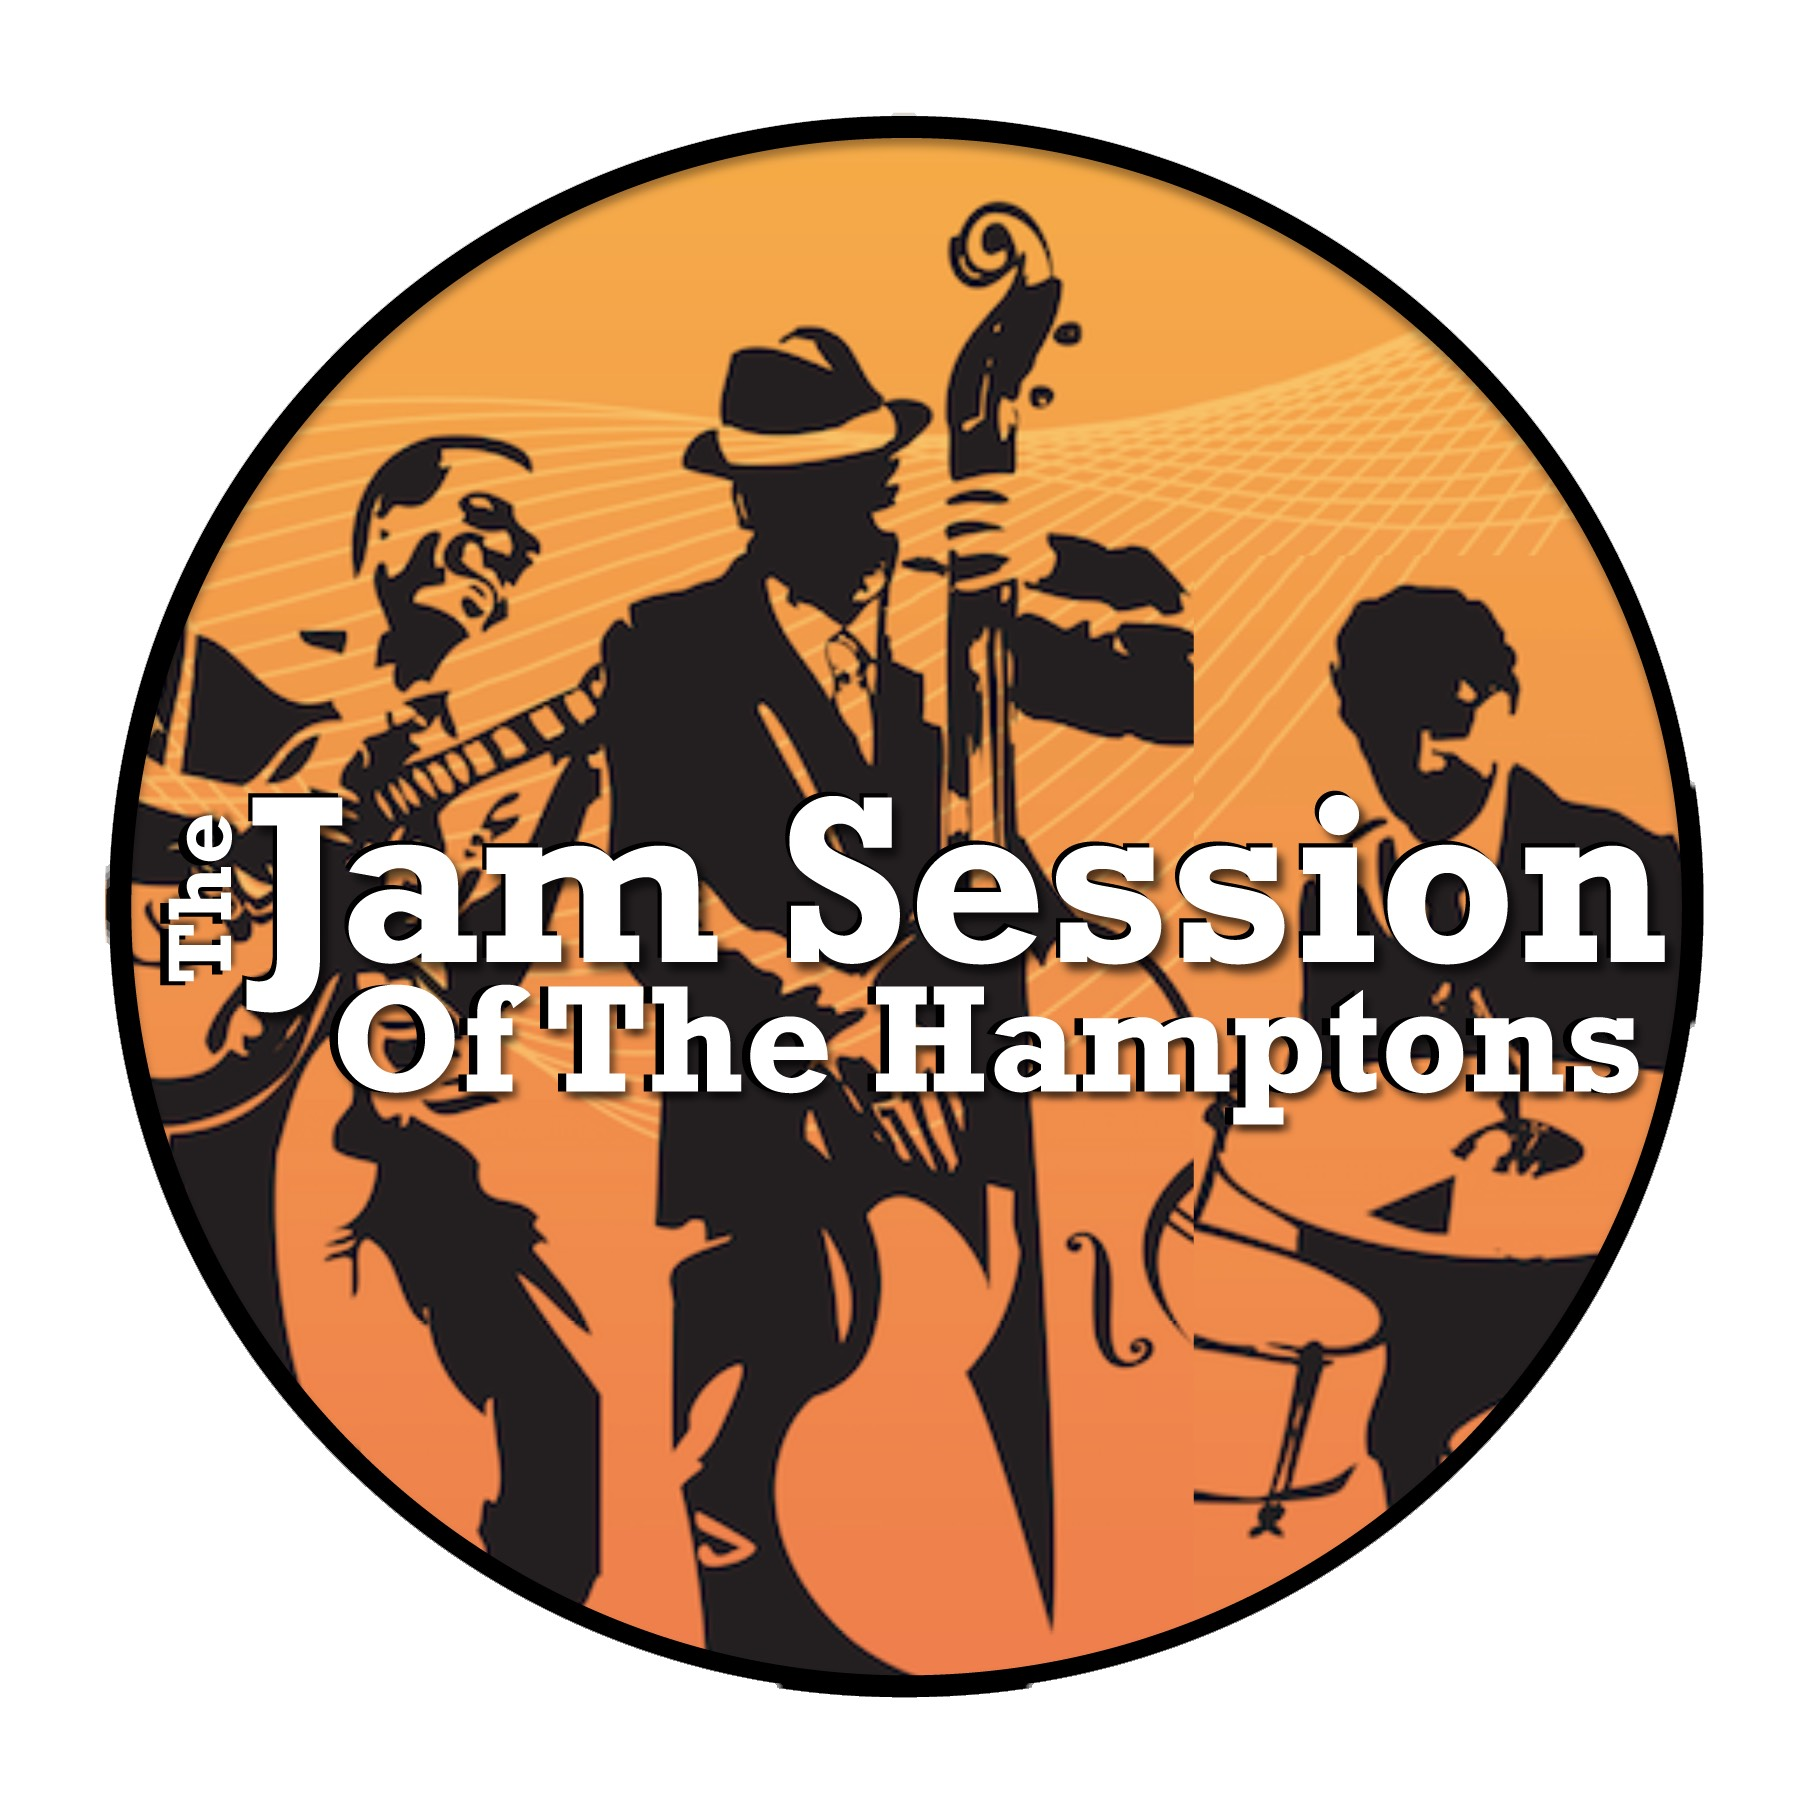 The Jam Sessionof the Hamptons presents: - Saturday, June 15: LUMA, 5-7pm featuring Dan Lauter on saxophone, Jeff Marshall on bass, Bill Smith-piano, Bosco-guitar and Claes Brondal-drums. Saturday, June 22: 5-7pmBill O'Connell/Steve Slagle Band, 5-7pm, featuring Bill O'Connell-piano, Steve Slagle-saxophone, Jon Menegon-bass and Claes Brondal-drums. Saturday, August 10: 5-7pmMorris Goldberg Band, 5-7pm, featuring Morris Goldberg-Saxophone and penny whistle, Bill Smith-piano, Santi Debriano-bass and Claes Brondal-drums. Saturday, August 24: 5-7pmAlex Sipiagin/Bill O'Connell Band, 5-7pm, featuring Alex Sipaigin-trumpet, Bill O'Connell-piano, Santi Debriano-bass and Claes Brondal-drums.These events are free and open to the public! Rain or shine!